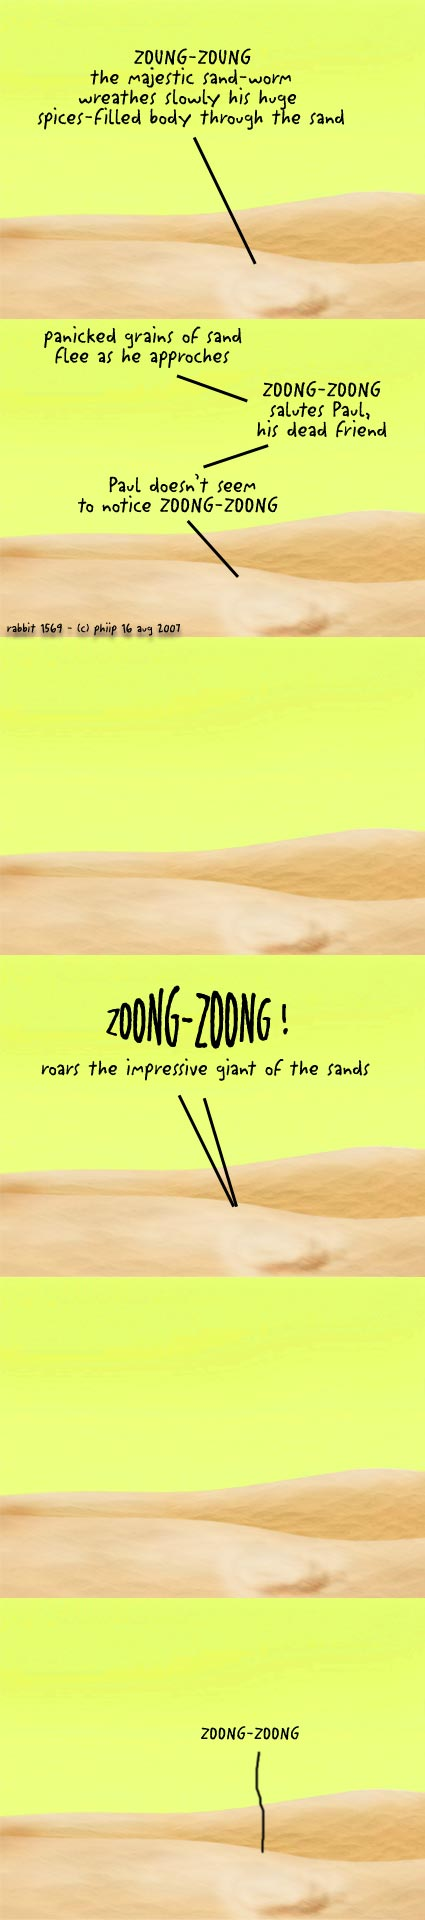 ZOONG ZOONG